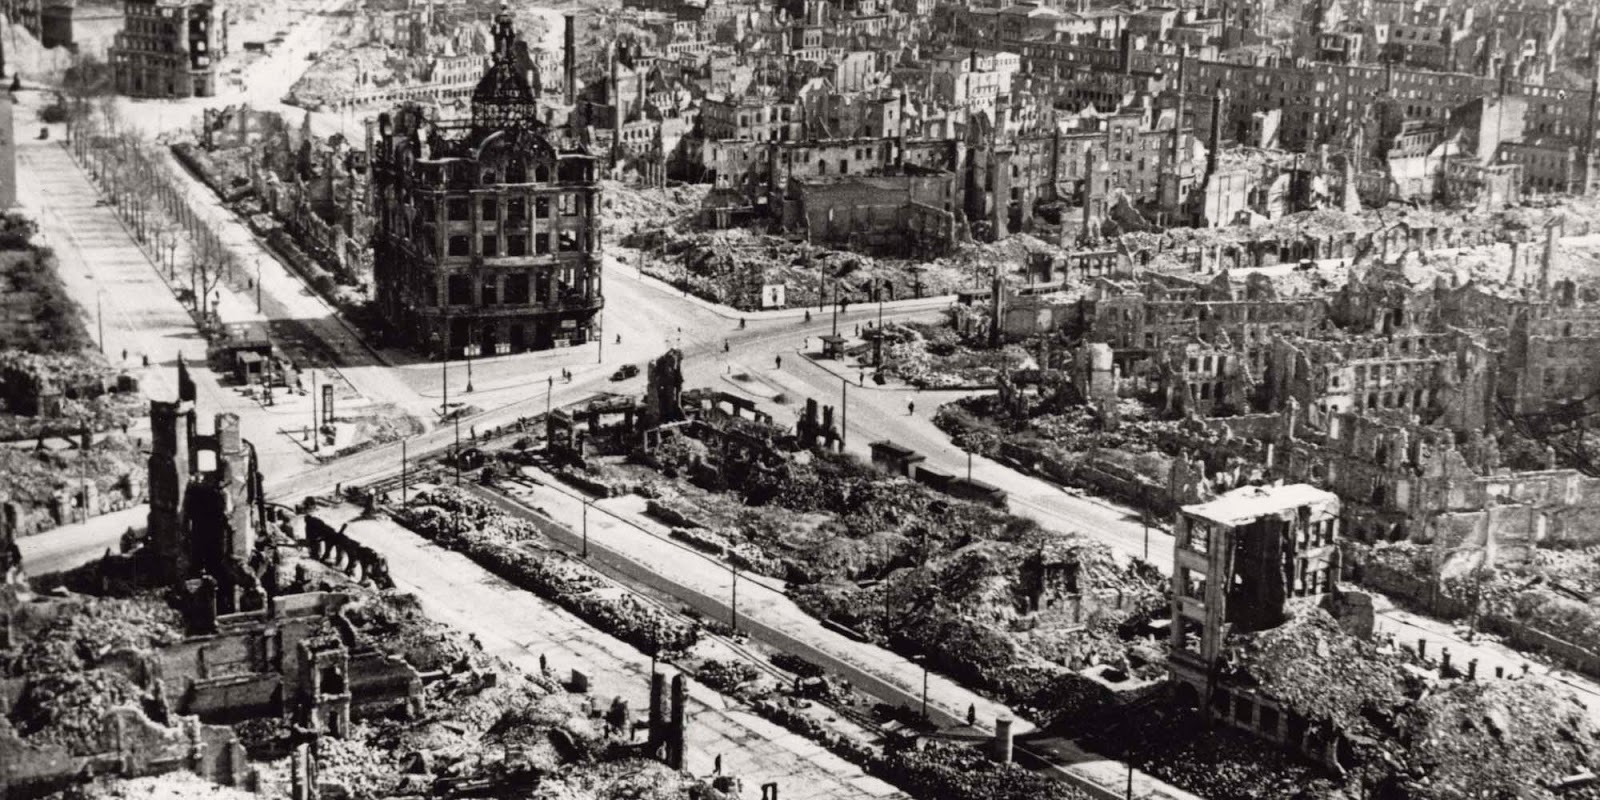 Beginning on the night of February 13, 1945, more than 1,200 heavy bombers dropped nearly 4,000 tons of high-explosive and incendiary bombs on the city in four successive raids.